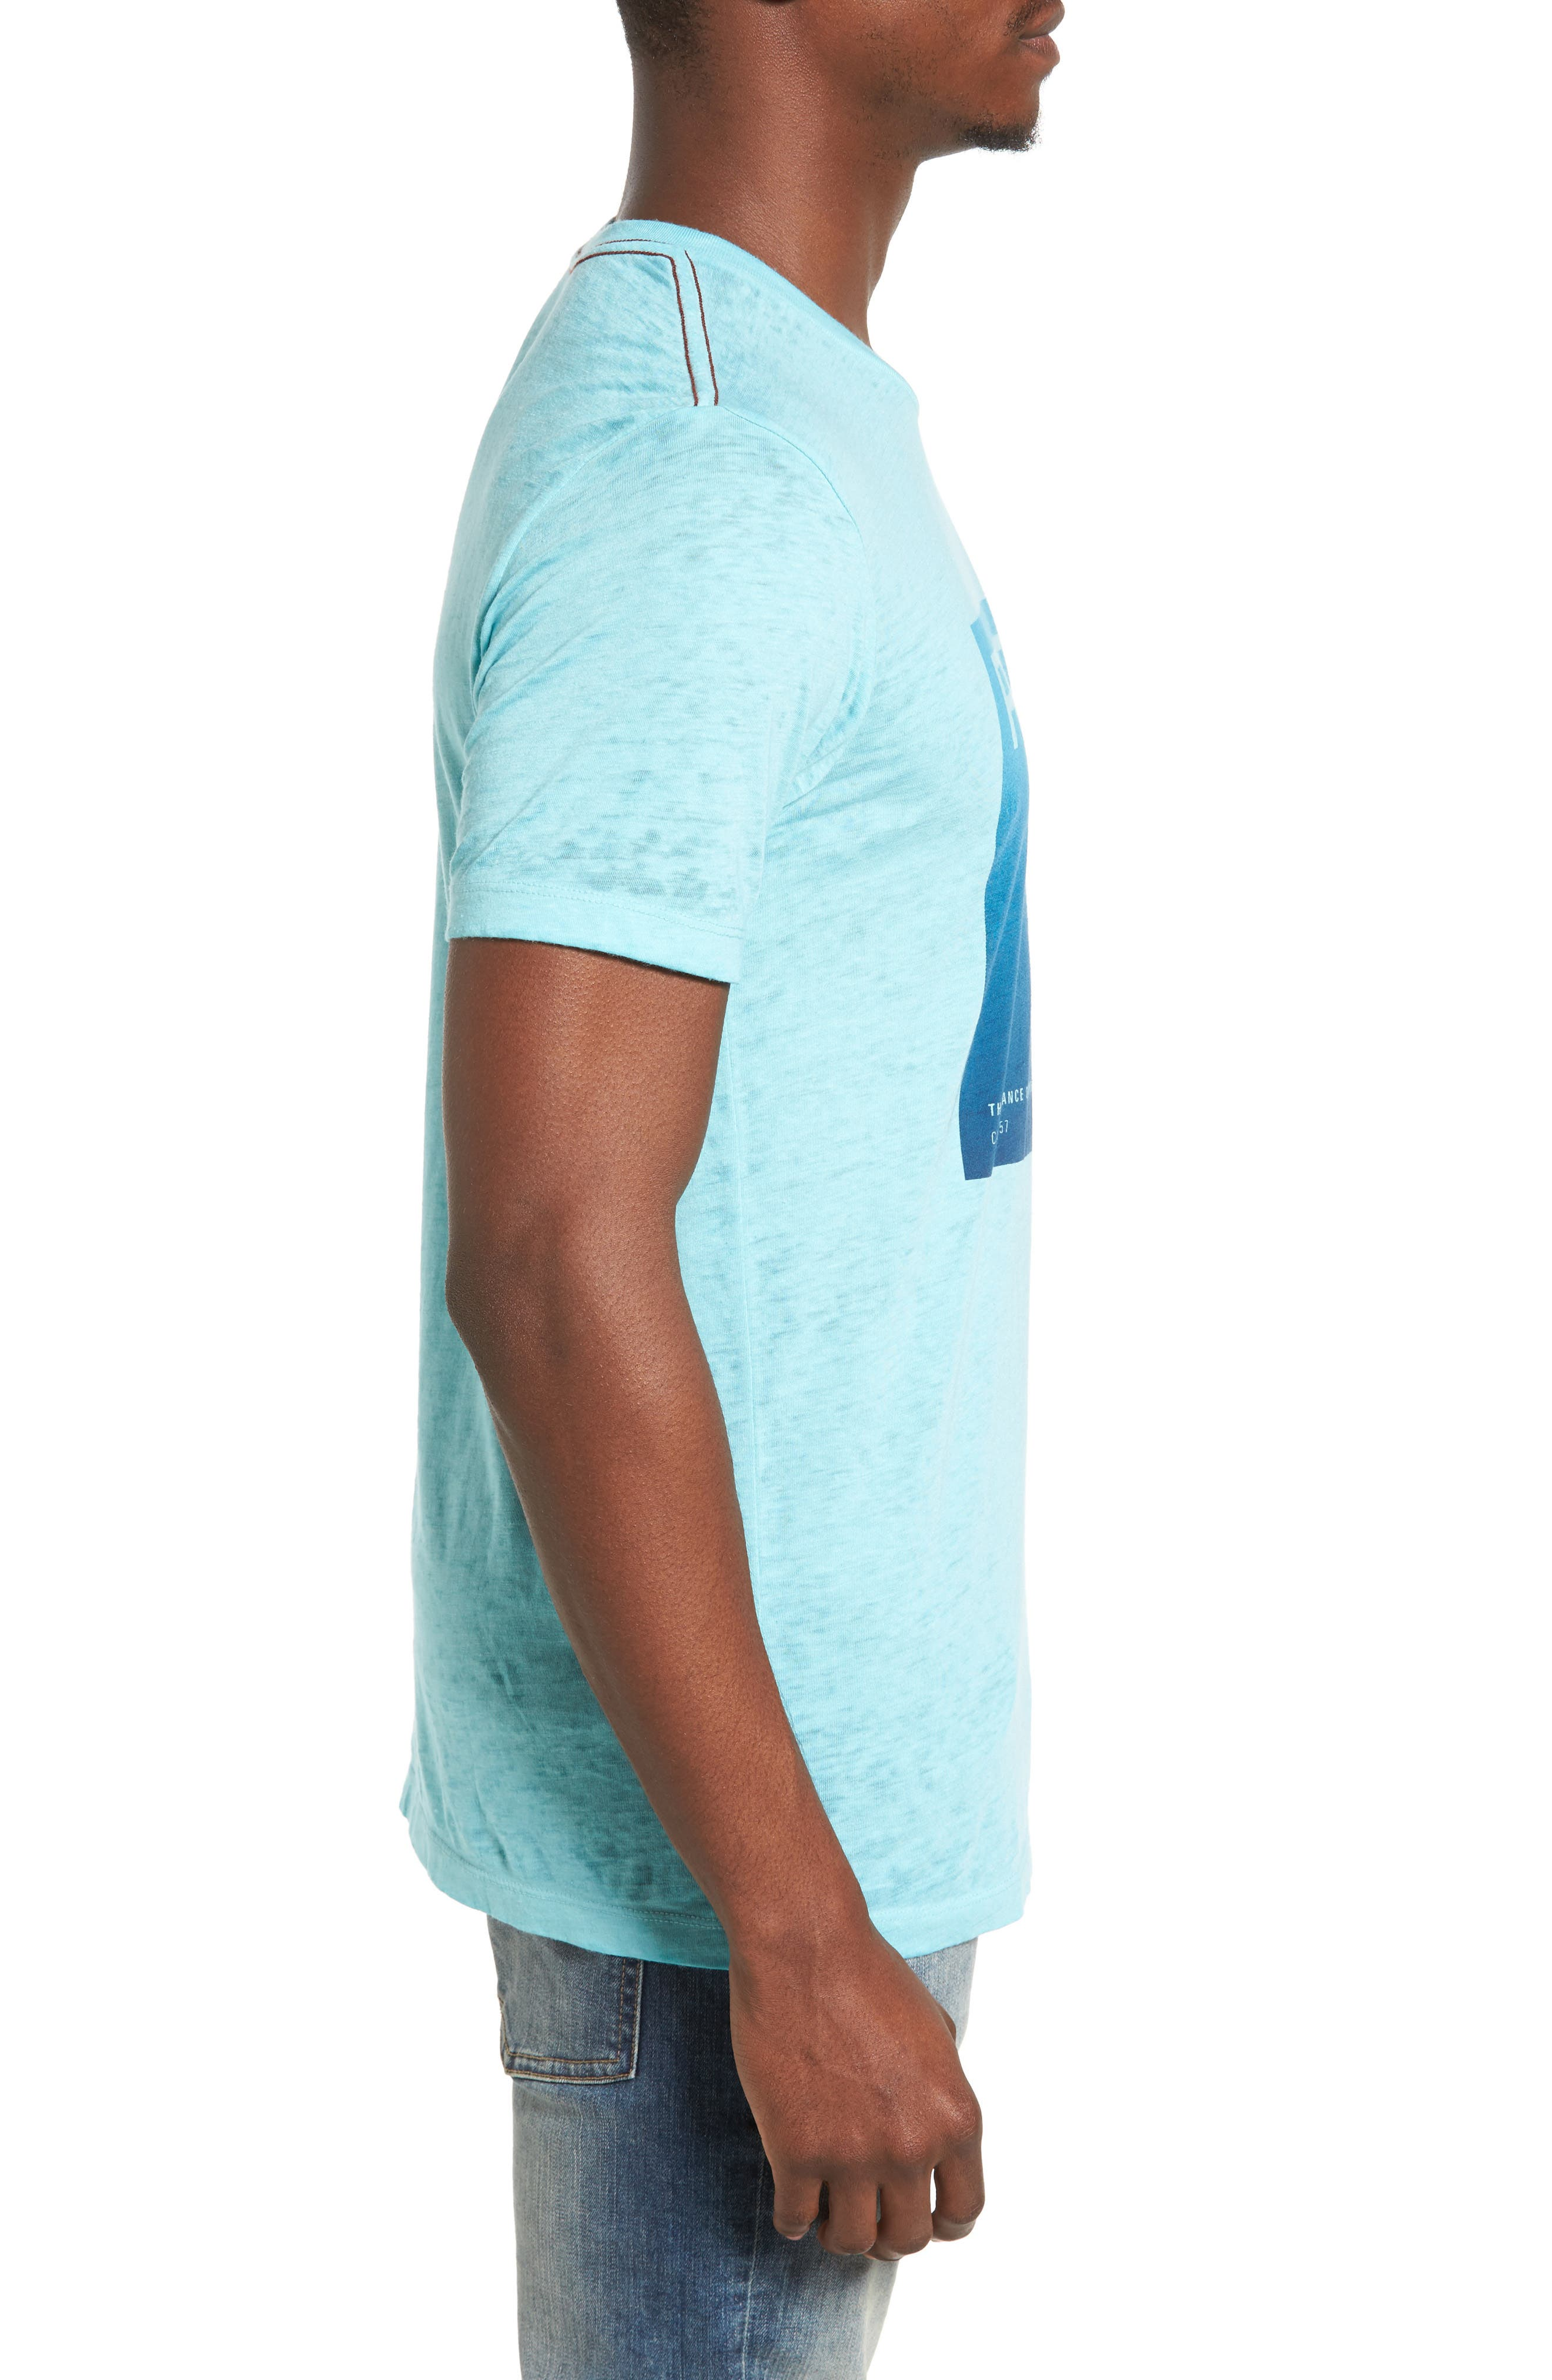 Balance Process T-Shirt,                             Alternate thumbnail 3, color,                             Nile Blue